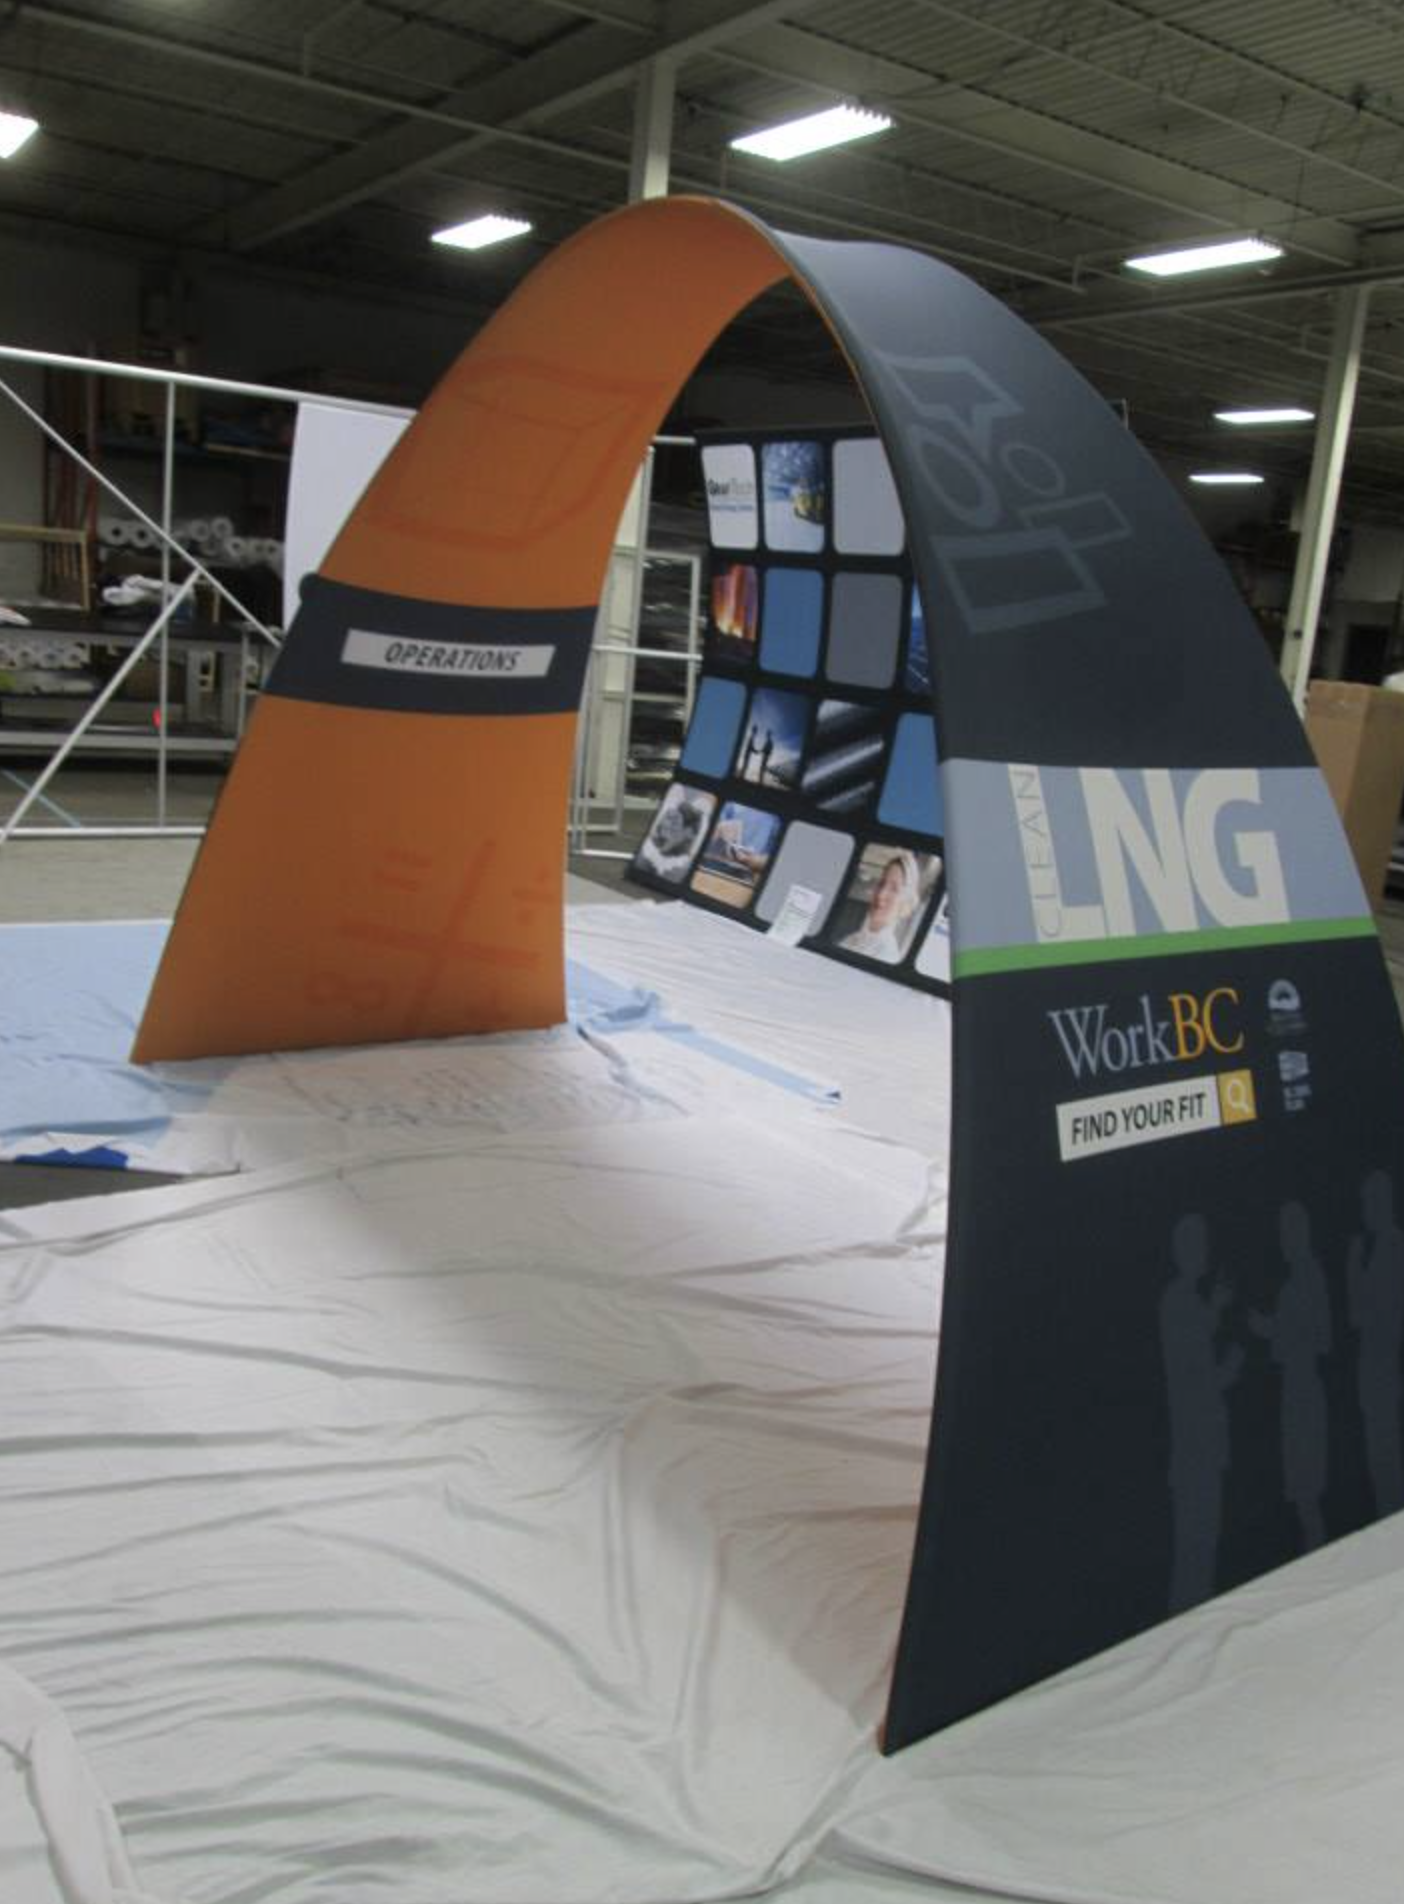 Trade Show Graphic Archway Stretch Fabric Trade Show Display Ideal For 20x20 Booth Spaces And Outdoor Outdoor